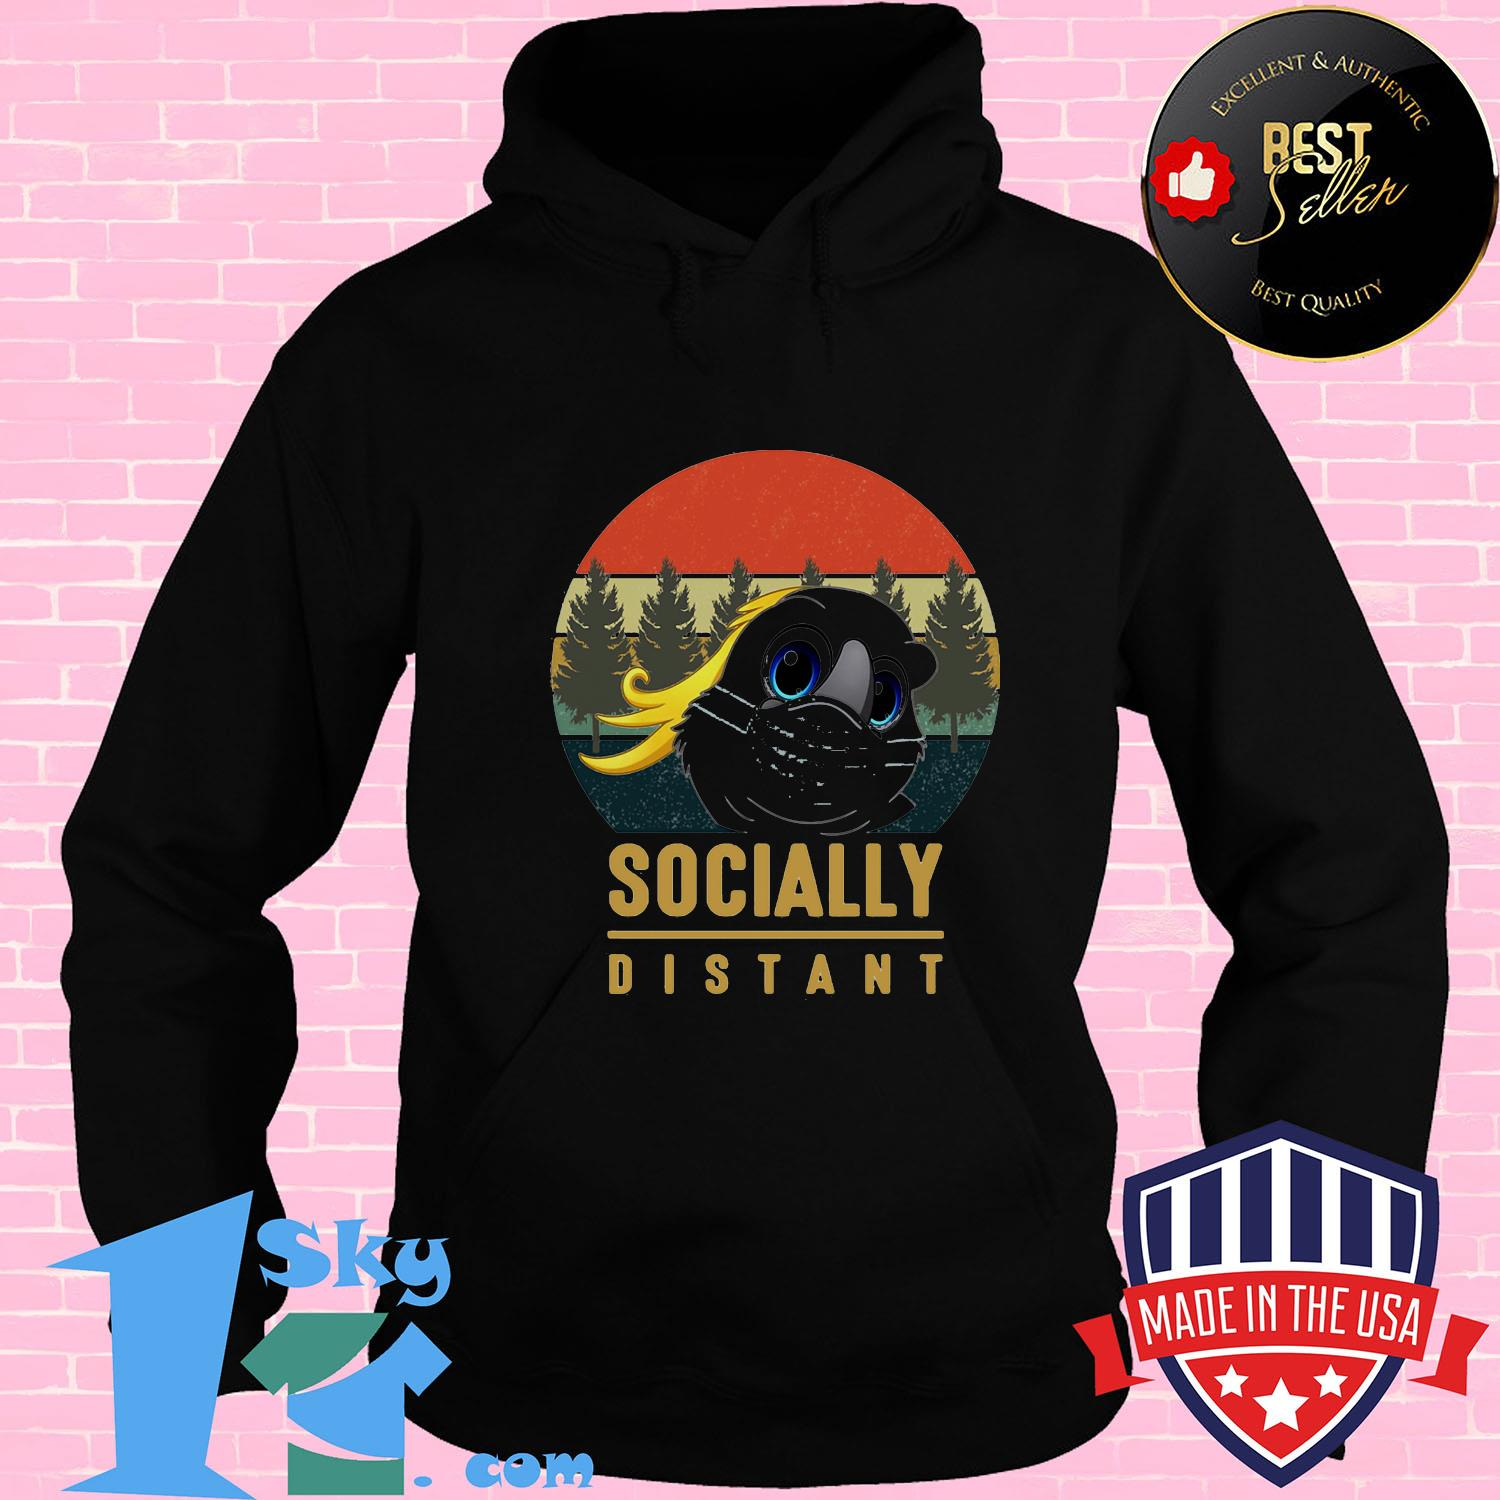 61d13064 social distant bird mask vintage shirt hoodie - Shop trending - We offer all trend shirts - 1SkyTee